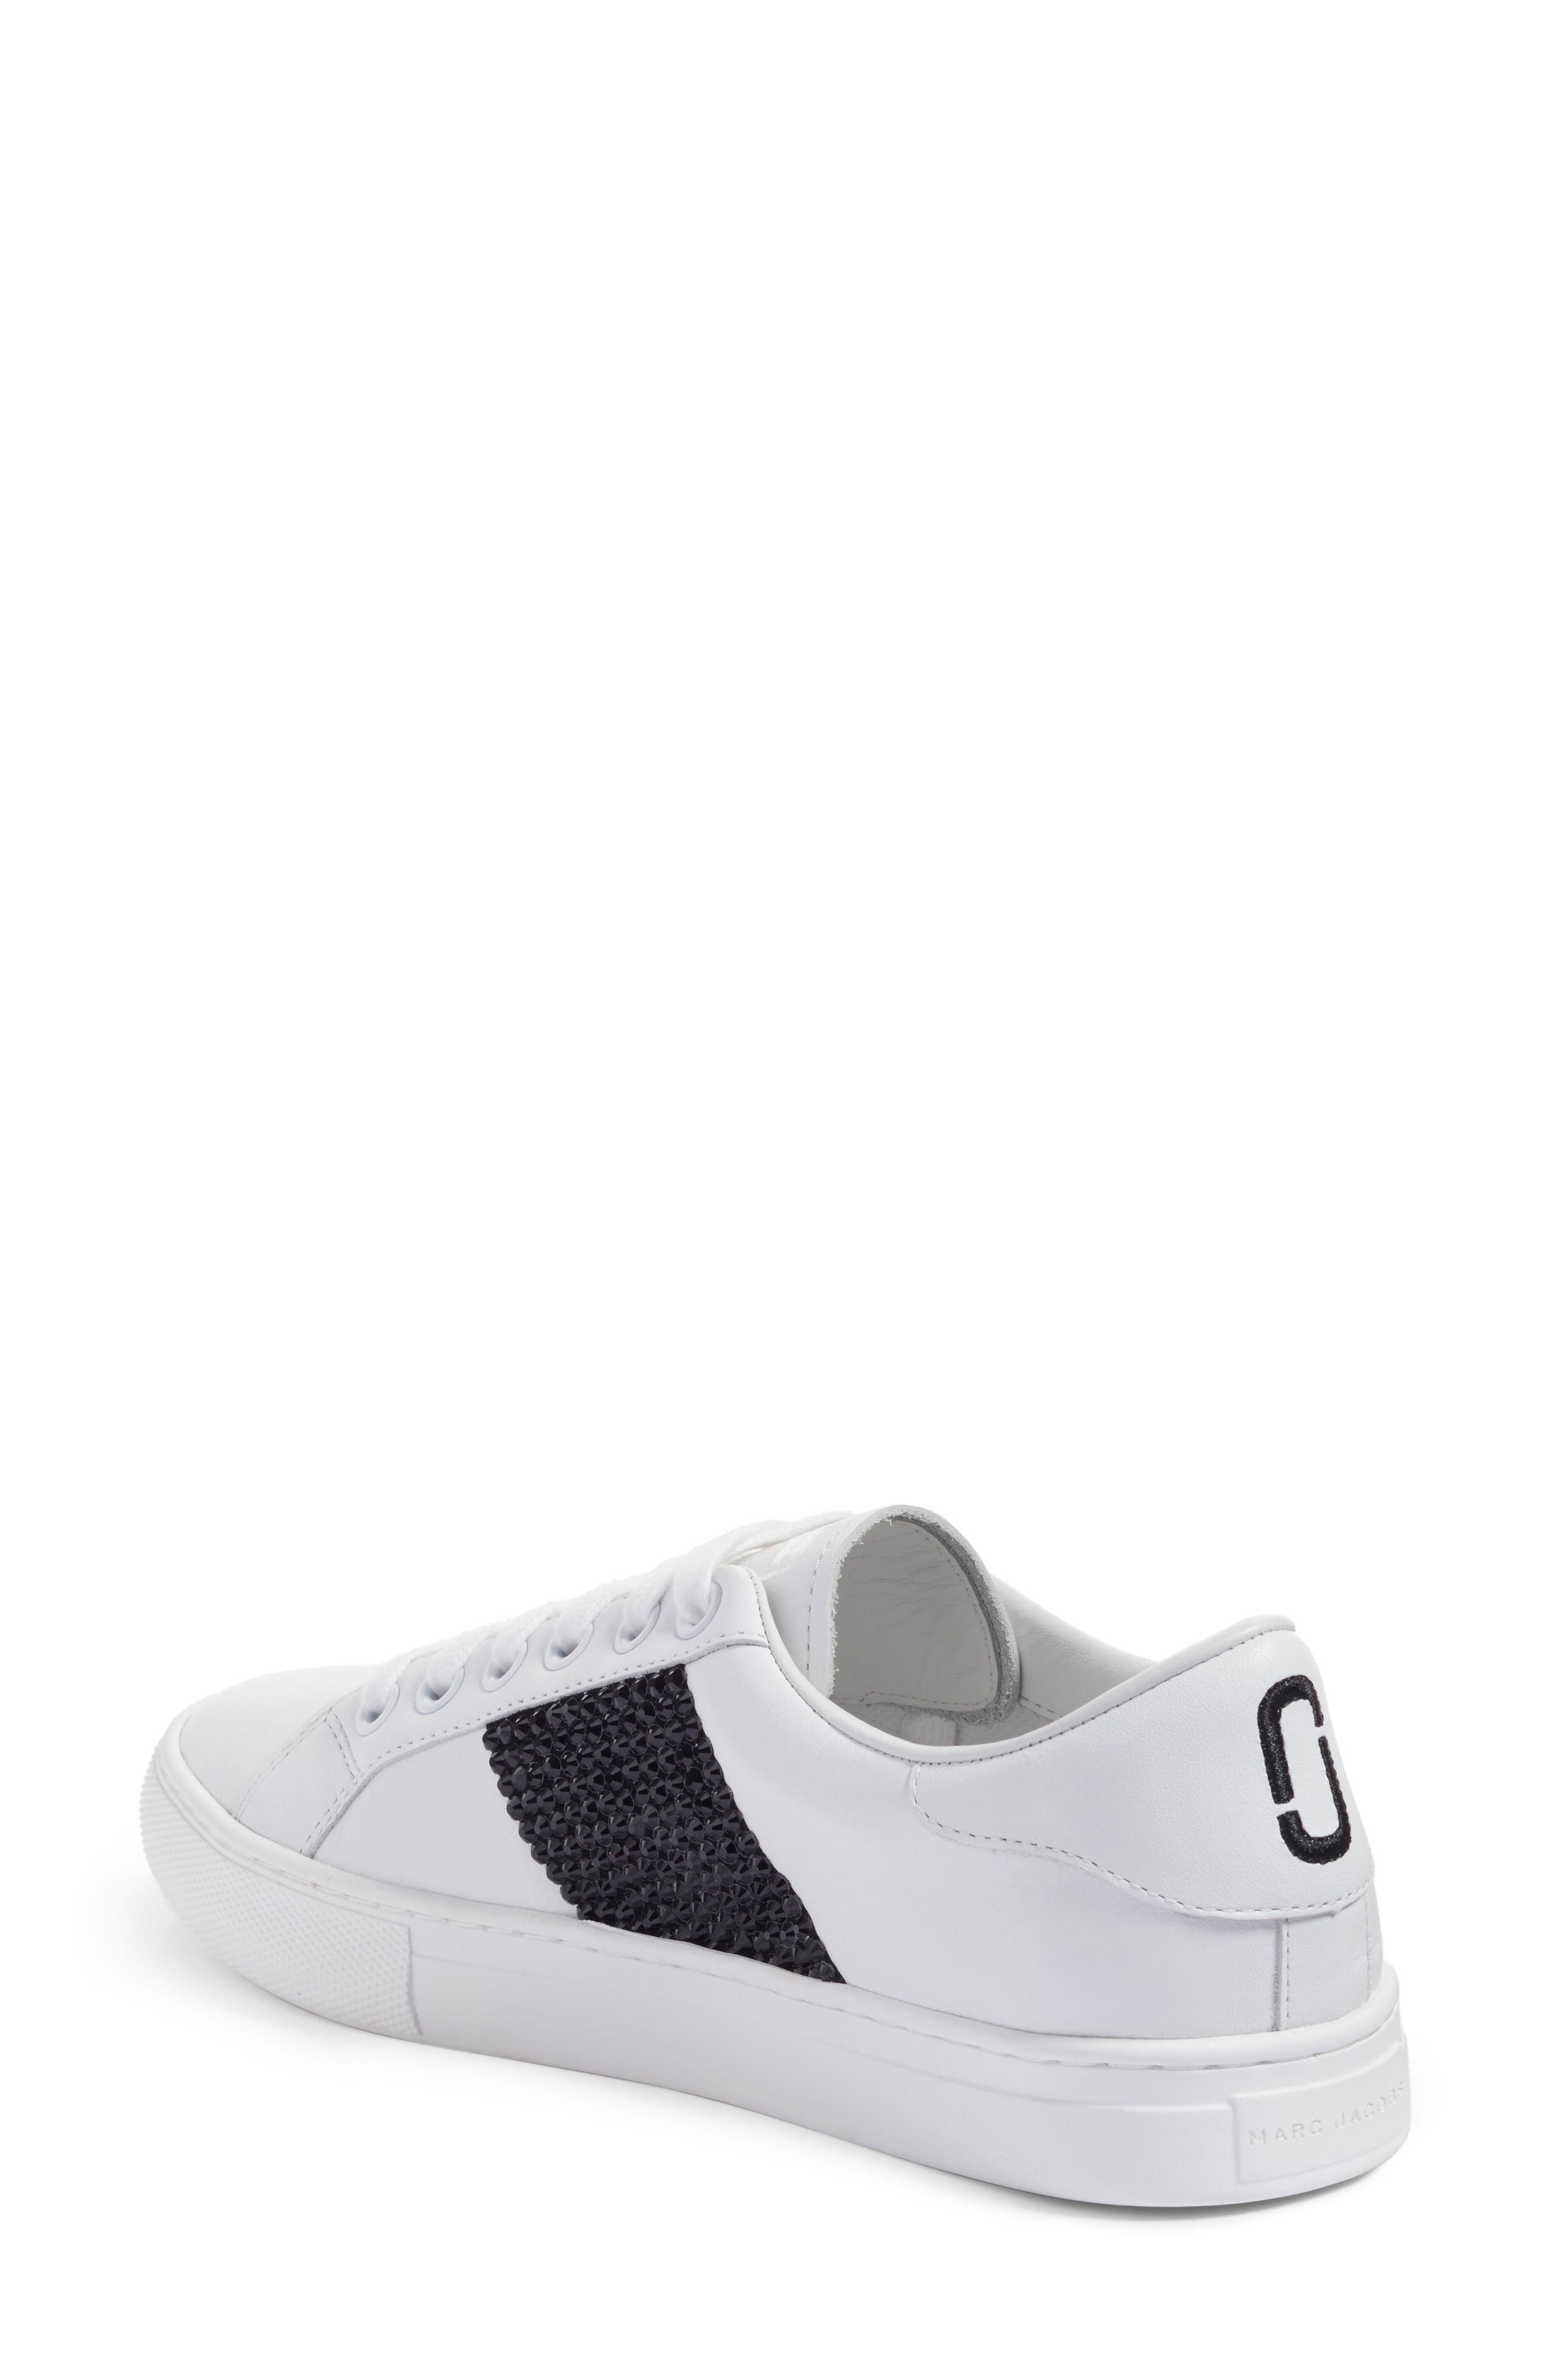 Alternate Image 2  - MARC JACOBS Empire Embellished Sneaker (Women)